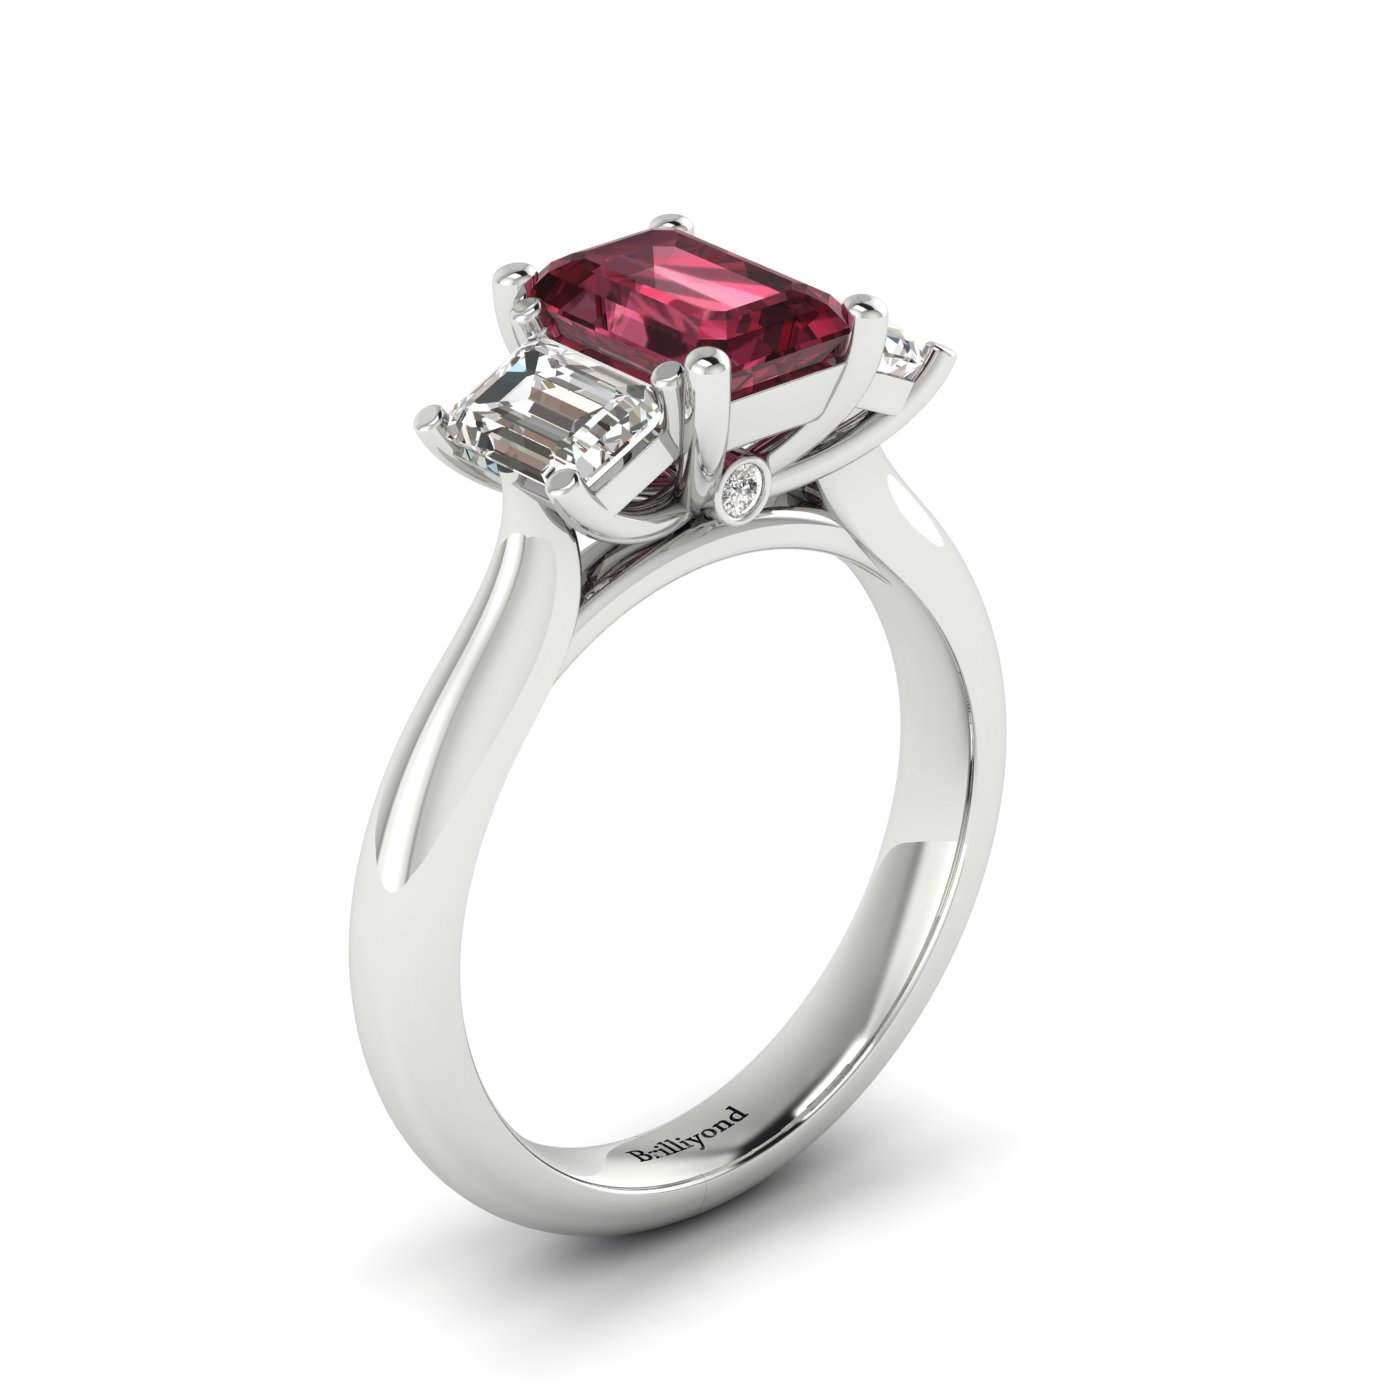 Garnet White Gold Emerald Cut Engagement Ring Blanche_image2